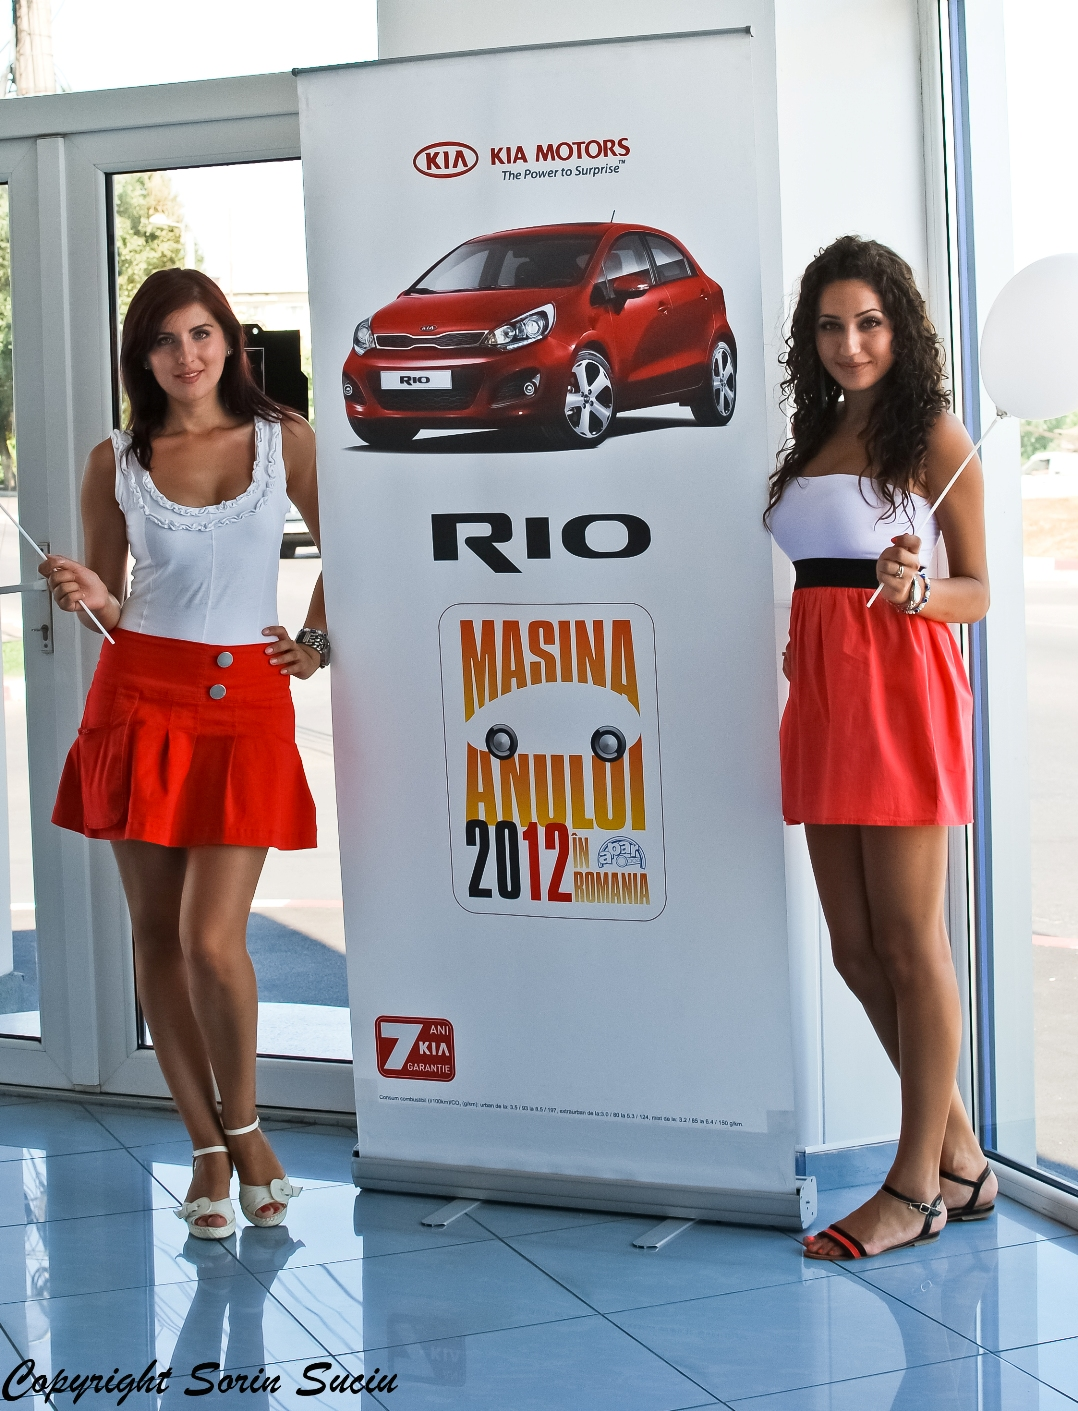 Hostess+Evenimente+-Showroom+Kia+2012+(3).JPG